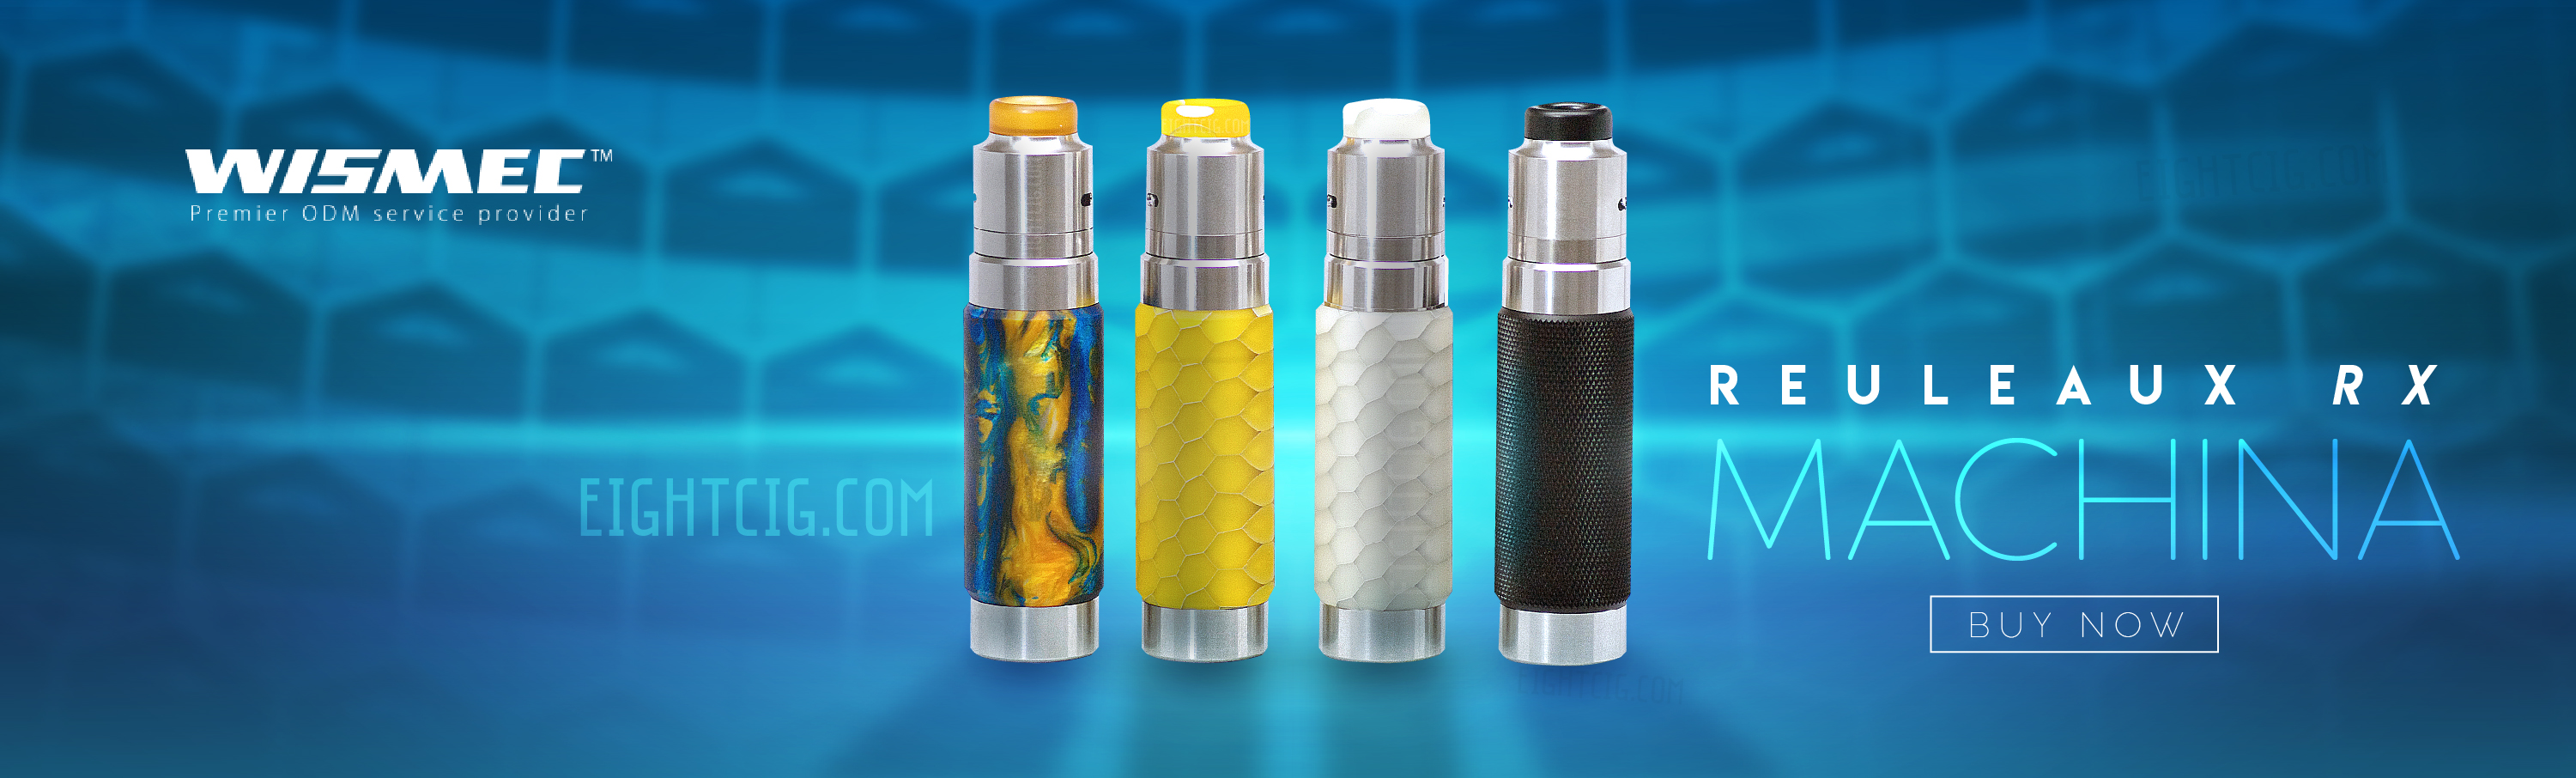 wismec reuleaux rx machina available at eightcig